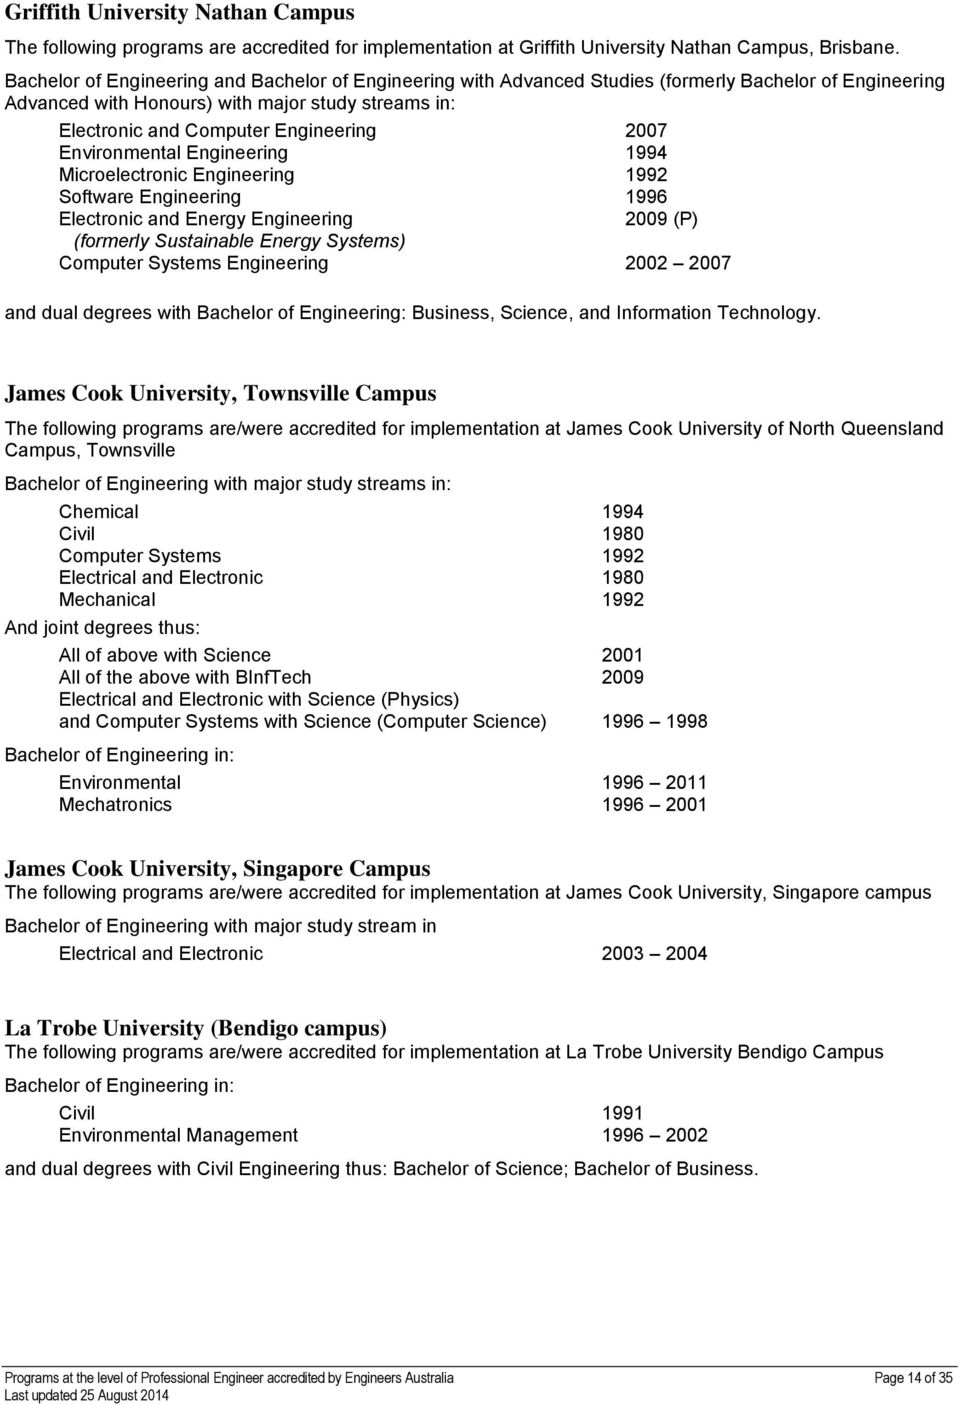 2007 Environmental Engineering 1994 Microelectronic Engineering 1992 Software Engineering 1996 Electronic and Energy Engineering 2009 (P) (formerly Sustainable Energy Systems) Computer Systems